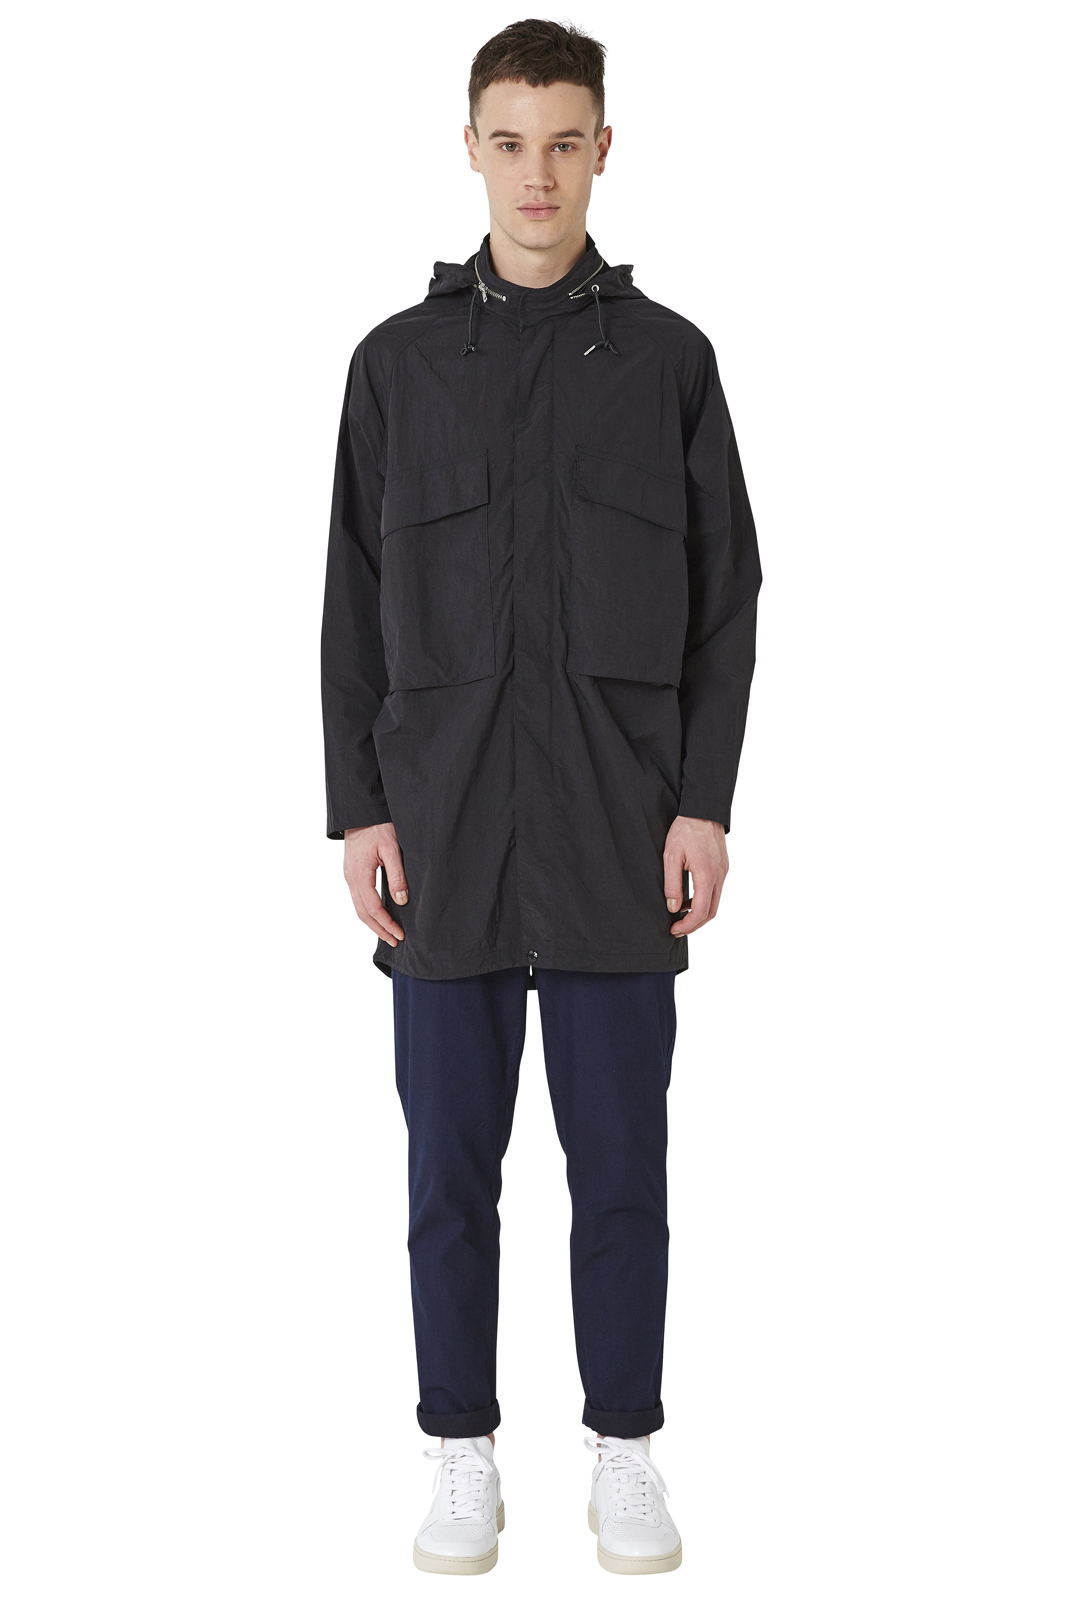 - Long and oversized crumpred nylon parka - Water-repellant